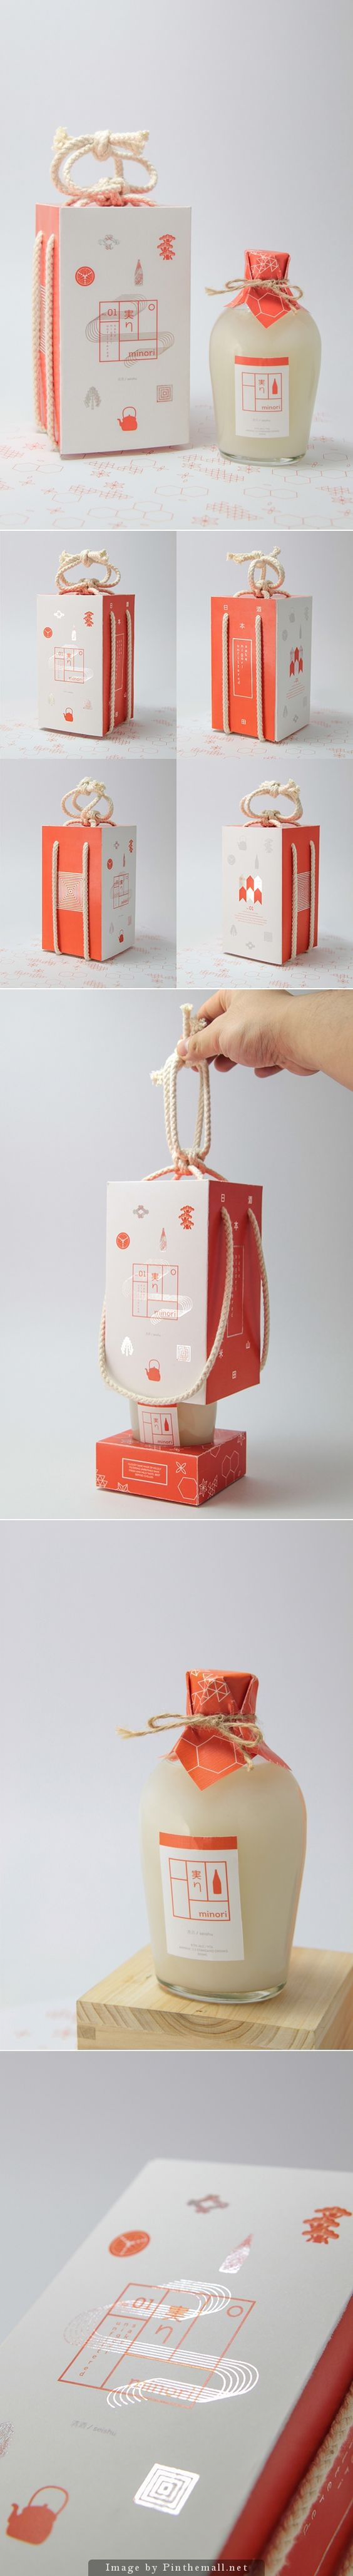 The very beautiful Minori Sake packaging curated by Packaging Diva PD. 'Minori' meaning harvest in Japanese.